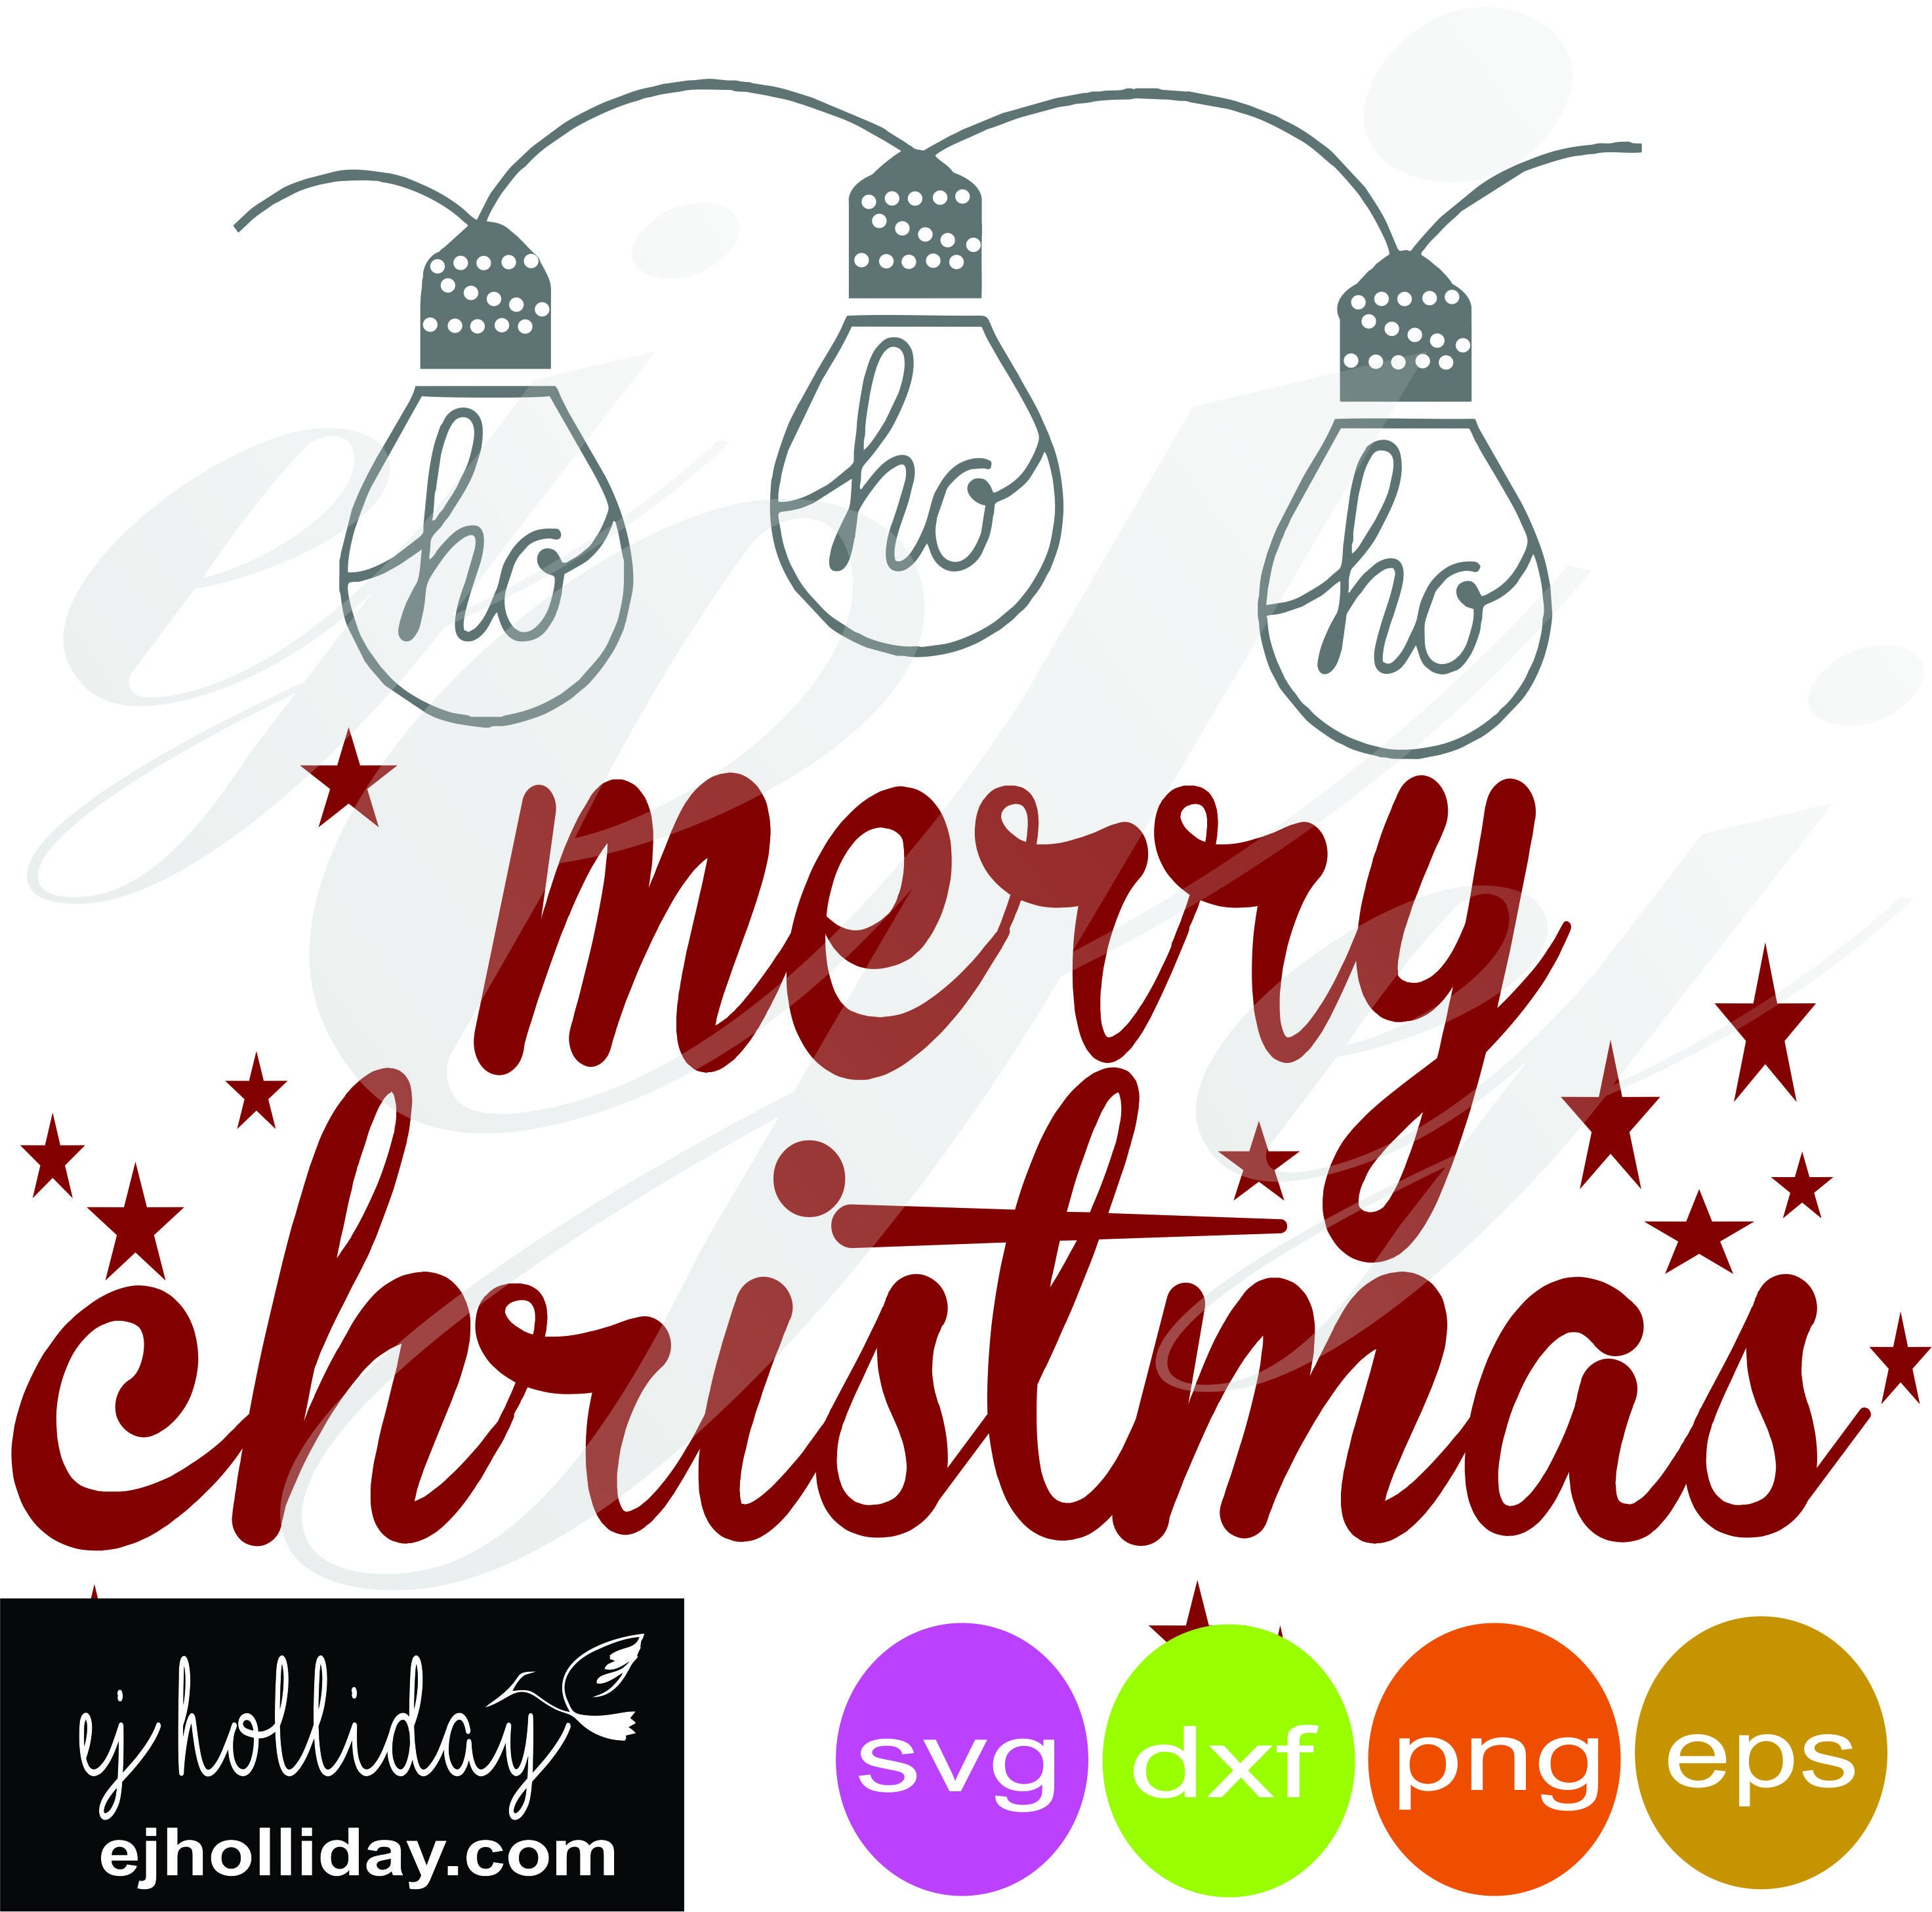 ho ho ho Merry Christmas svg dxf eps png Digital Cutting | Etsy